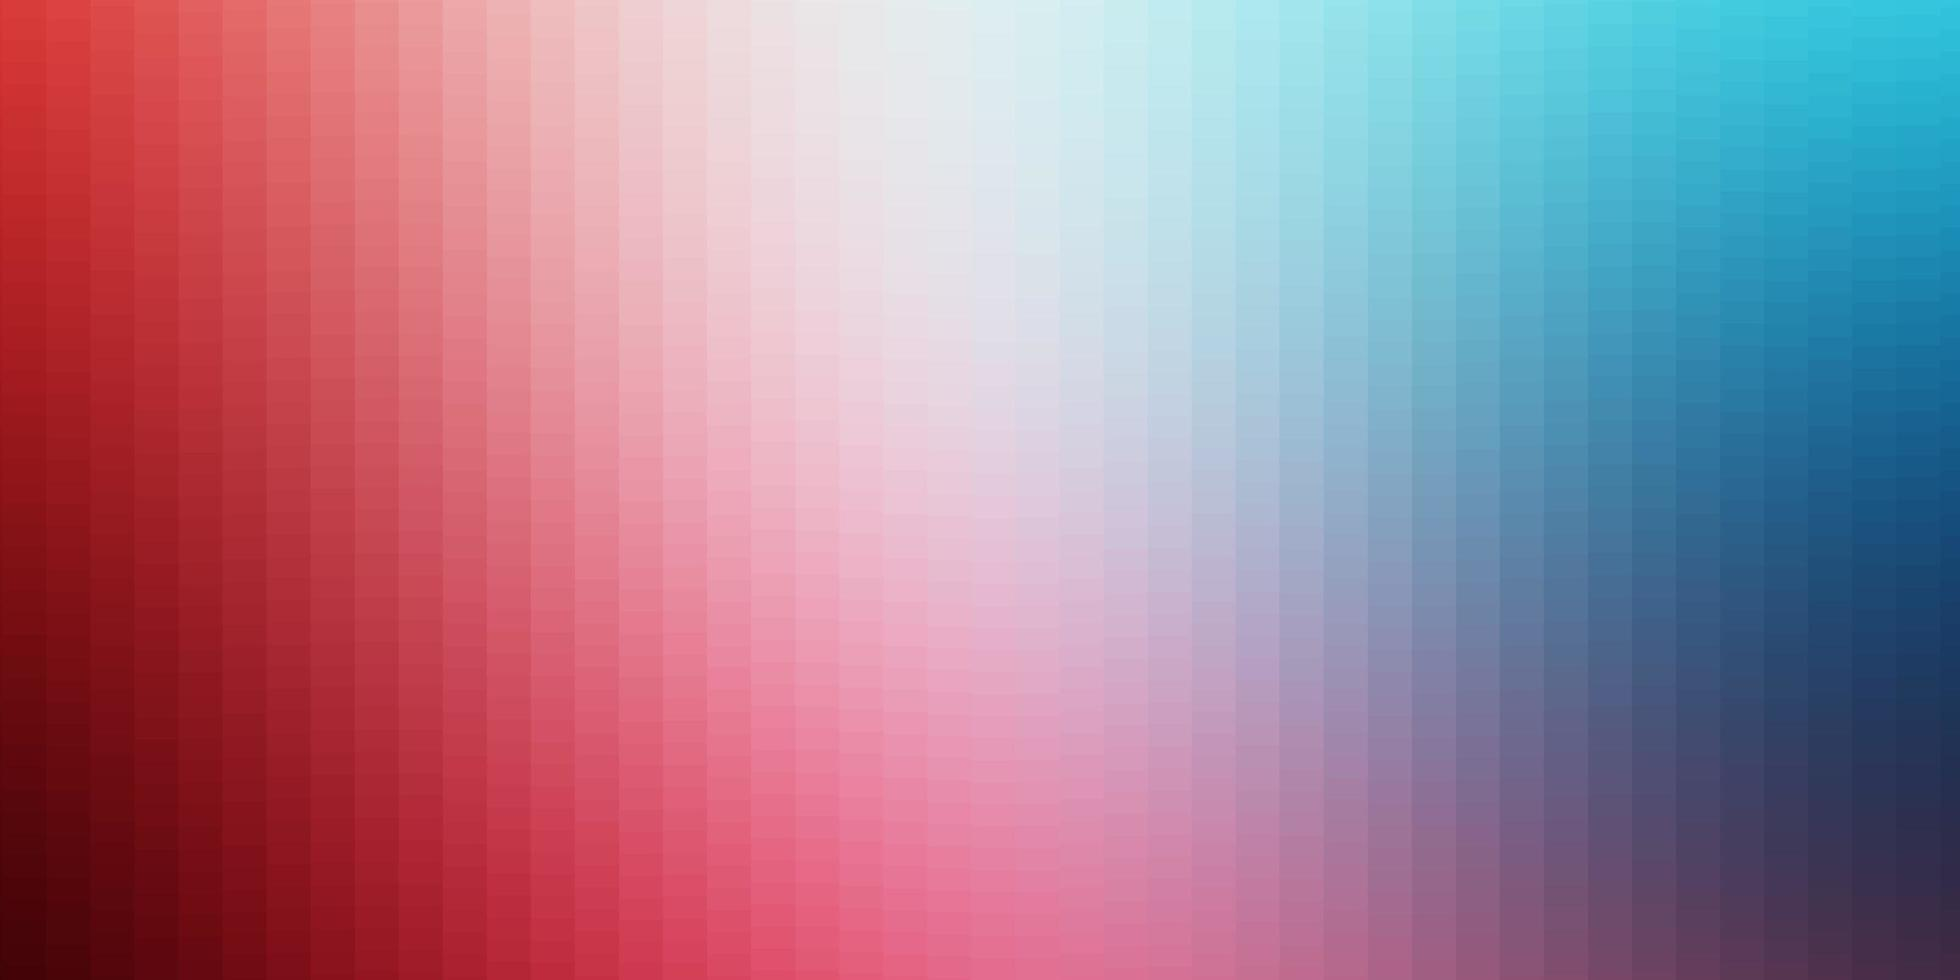 Light Blue, Red vector background with rectangles.